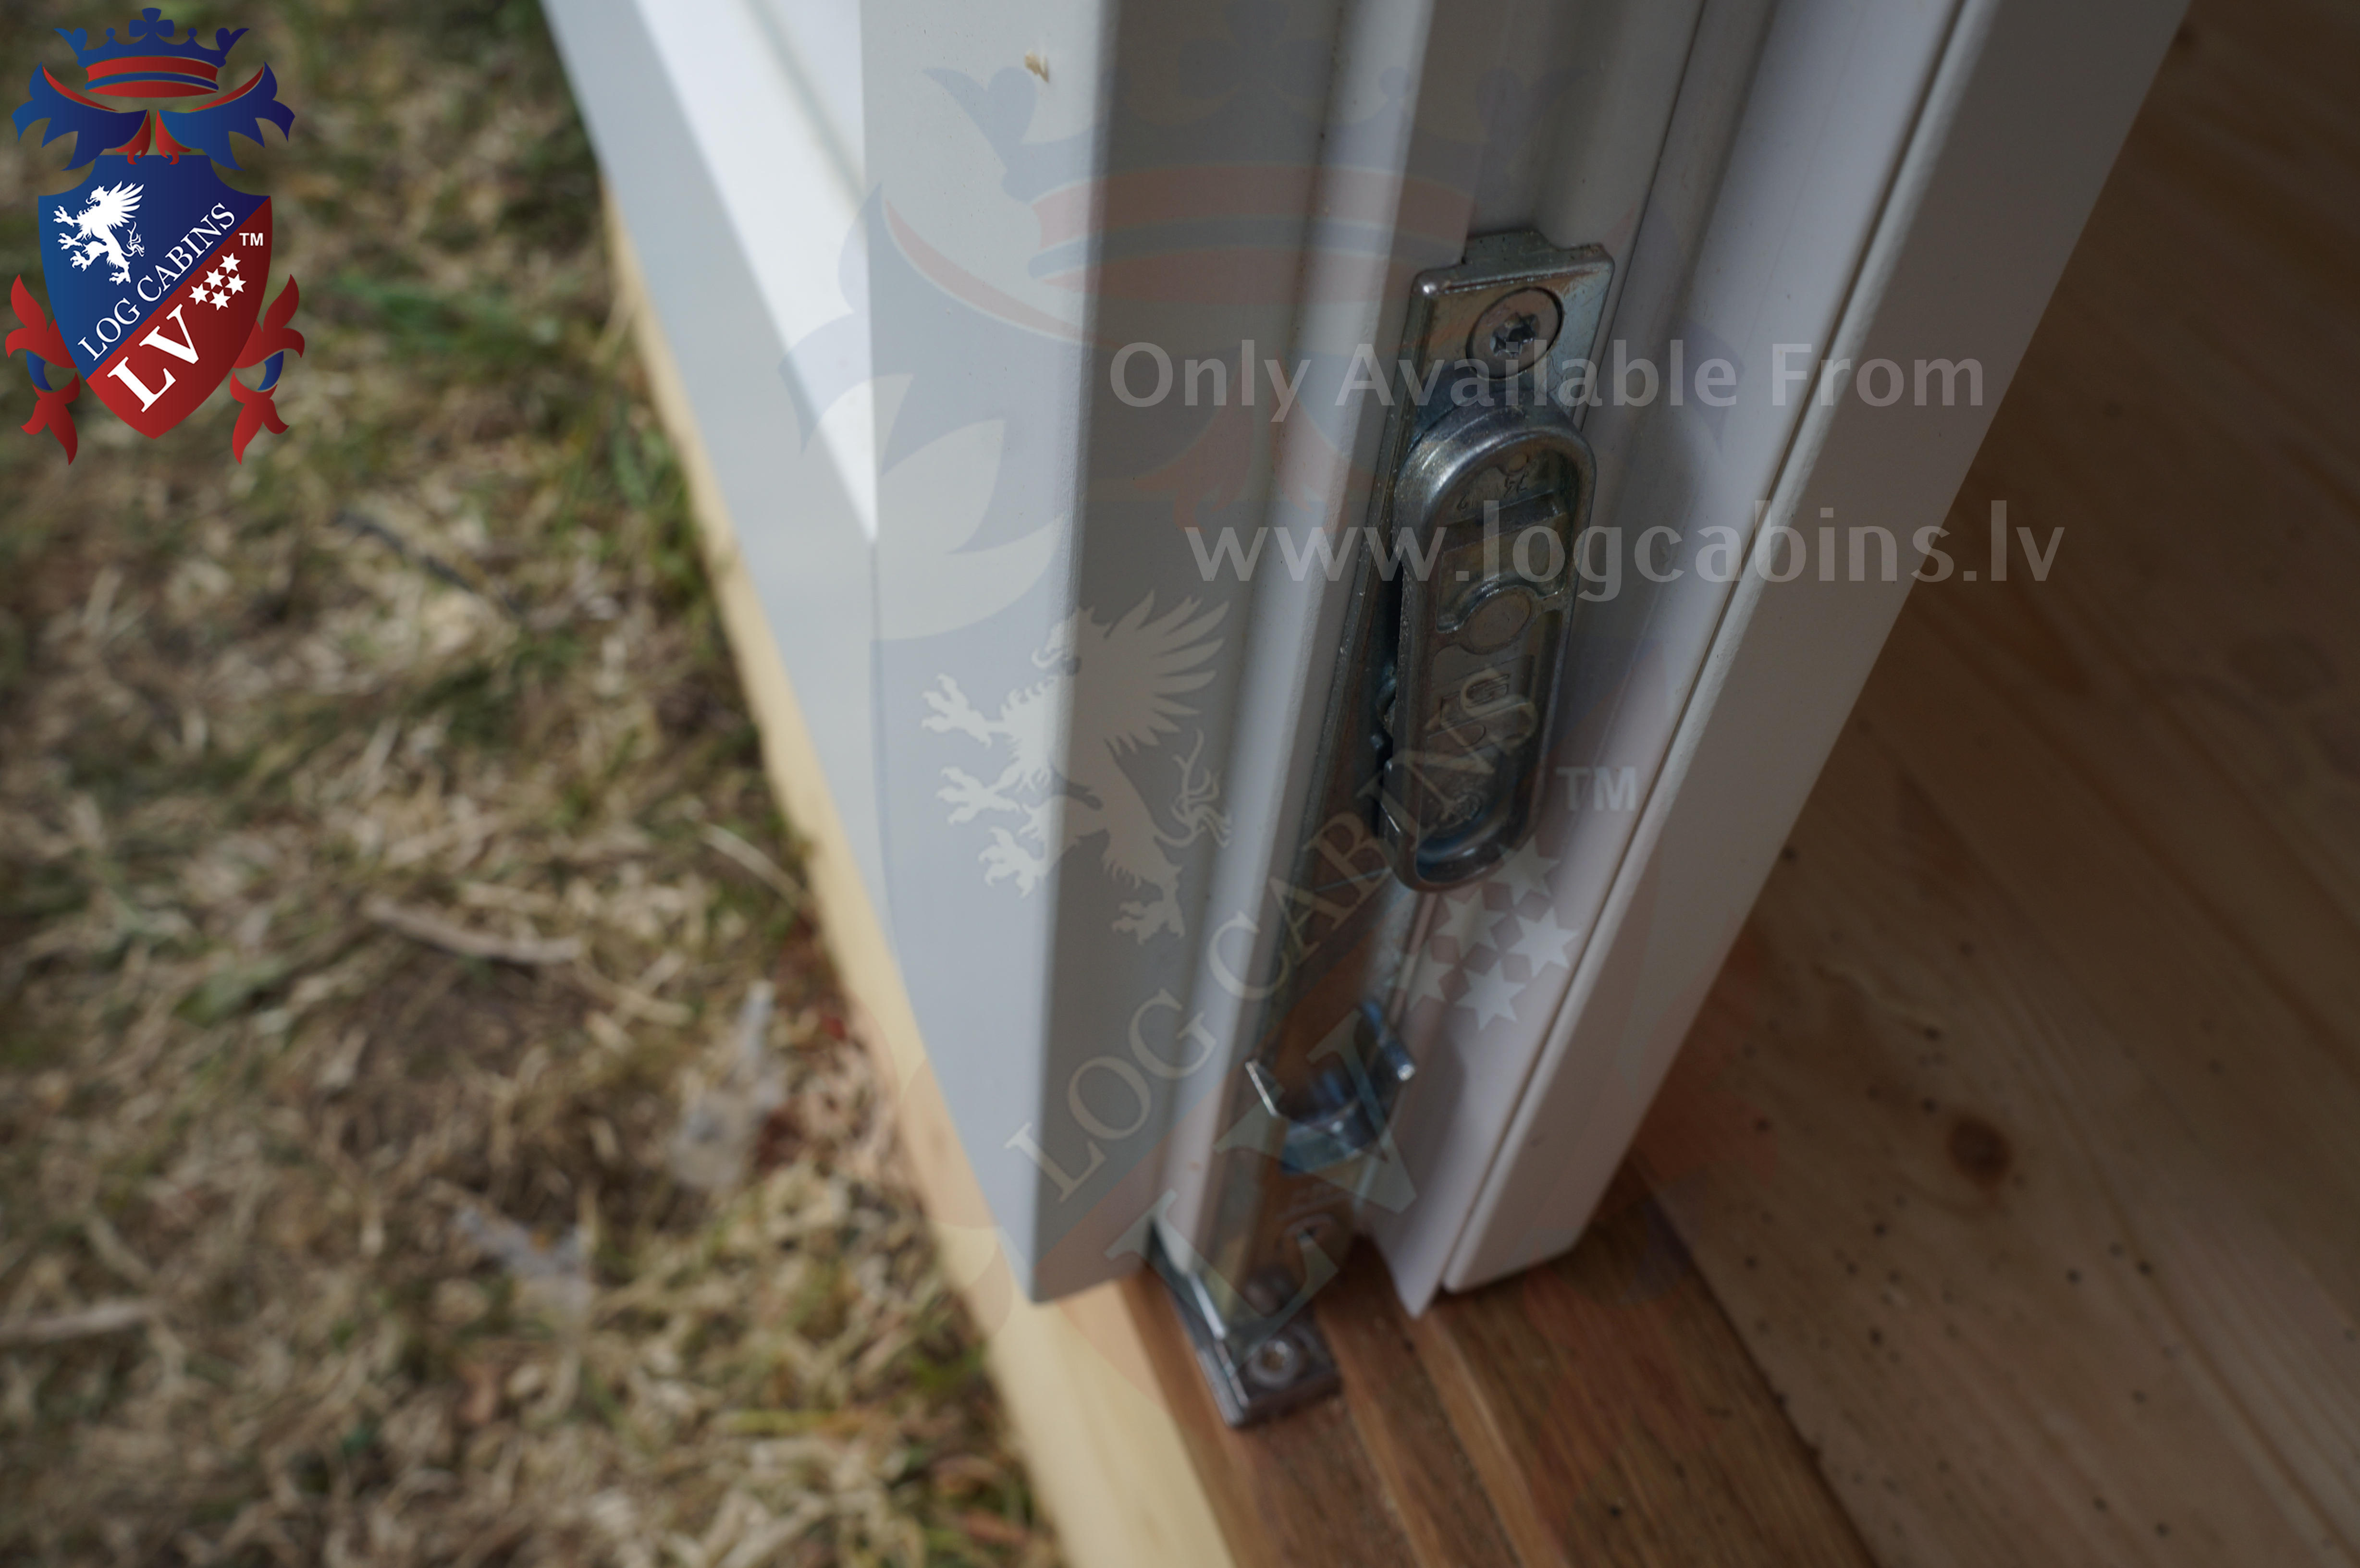 residential windows and doors quality windows log cabins 05